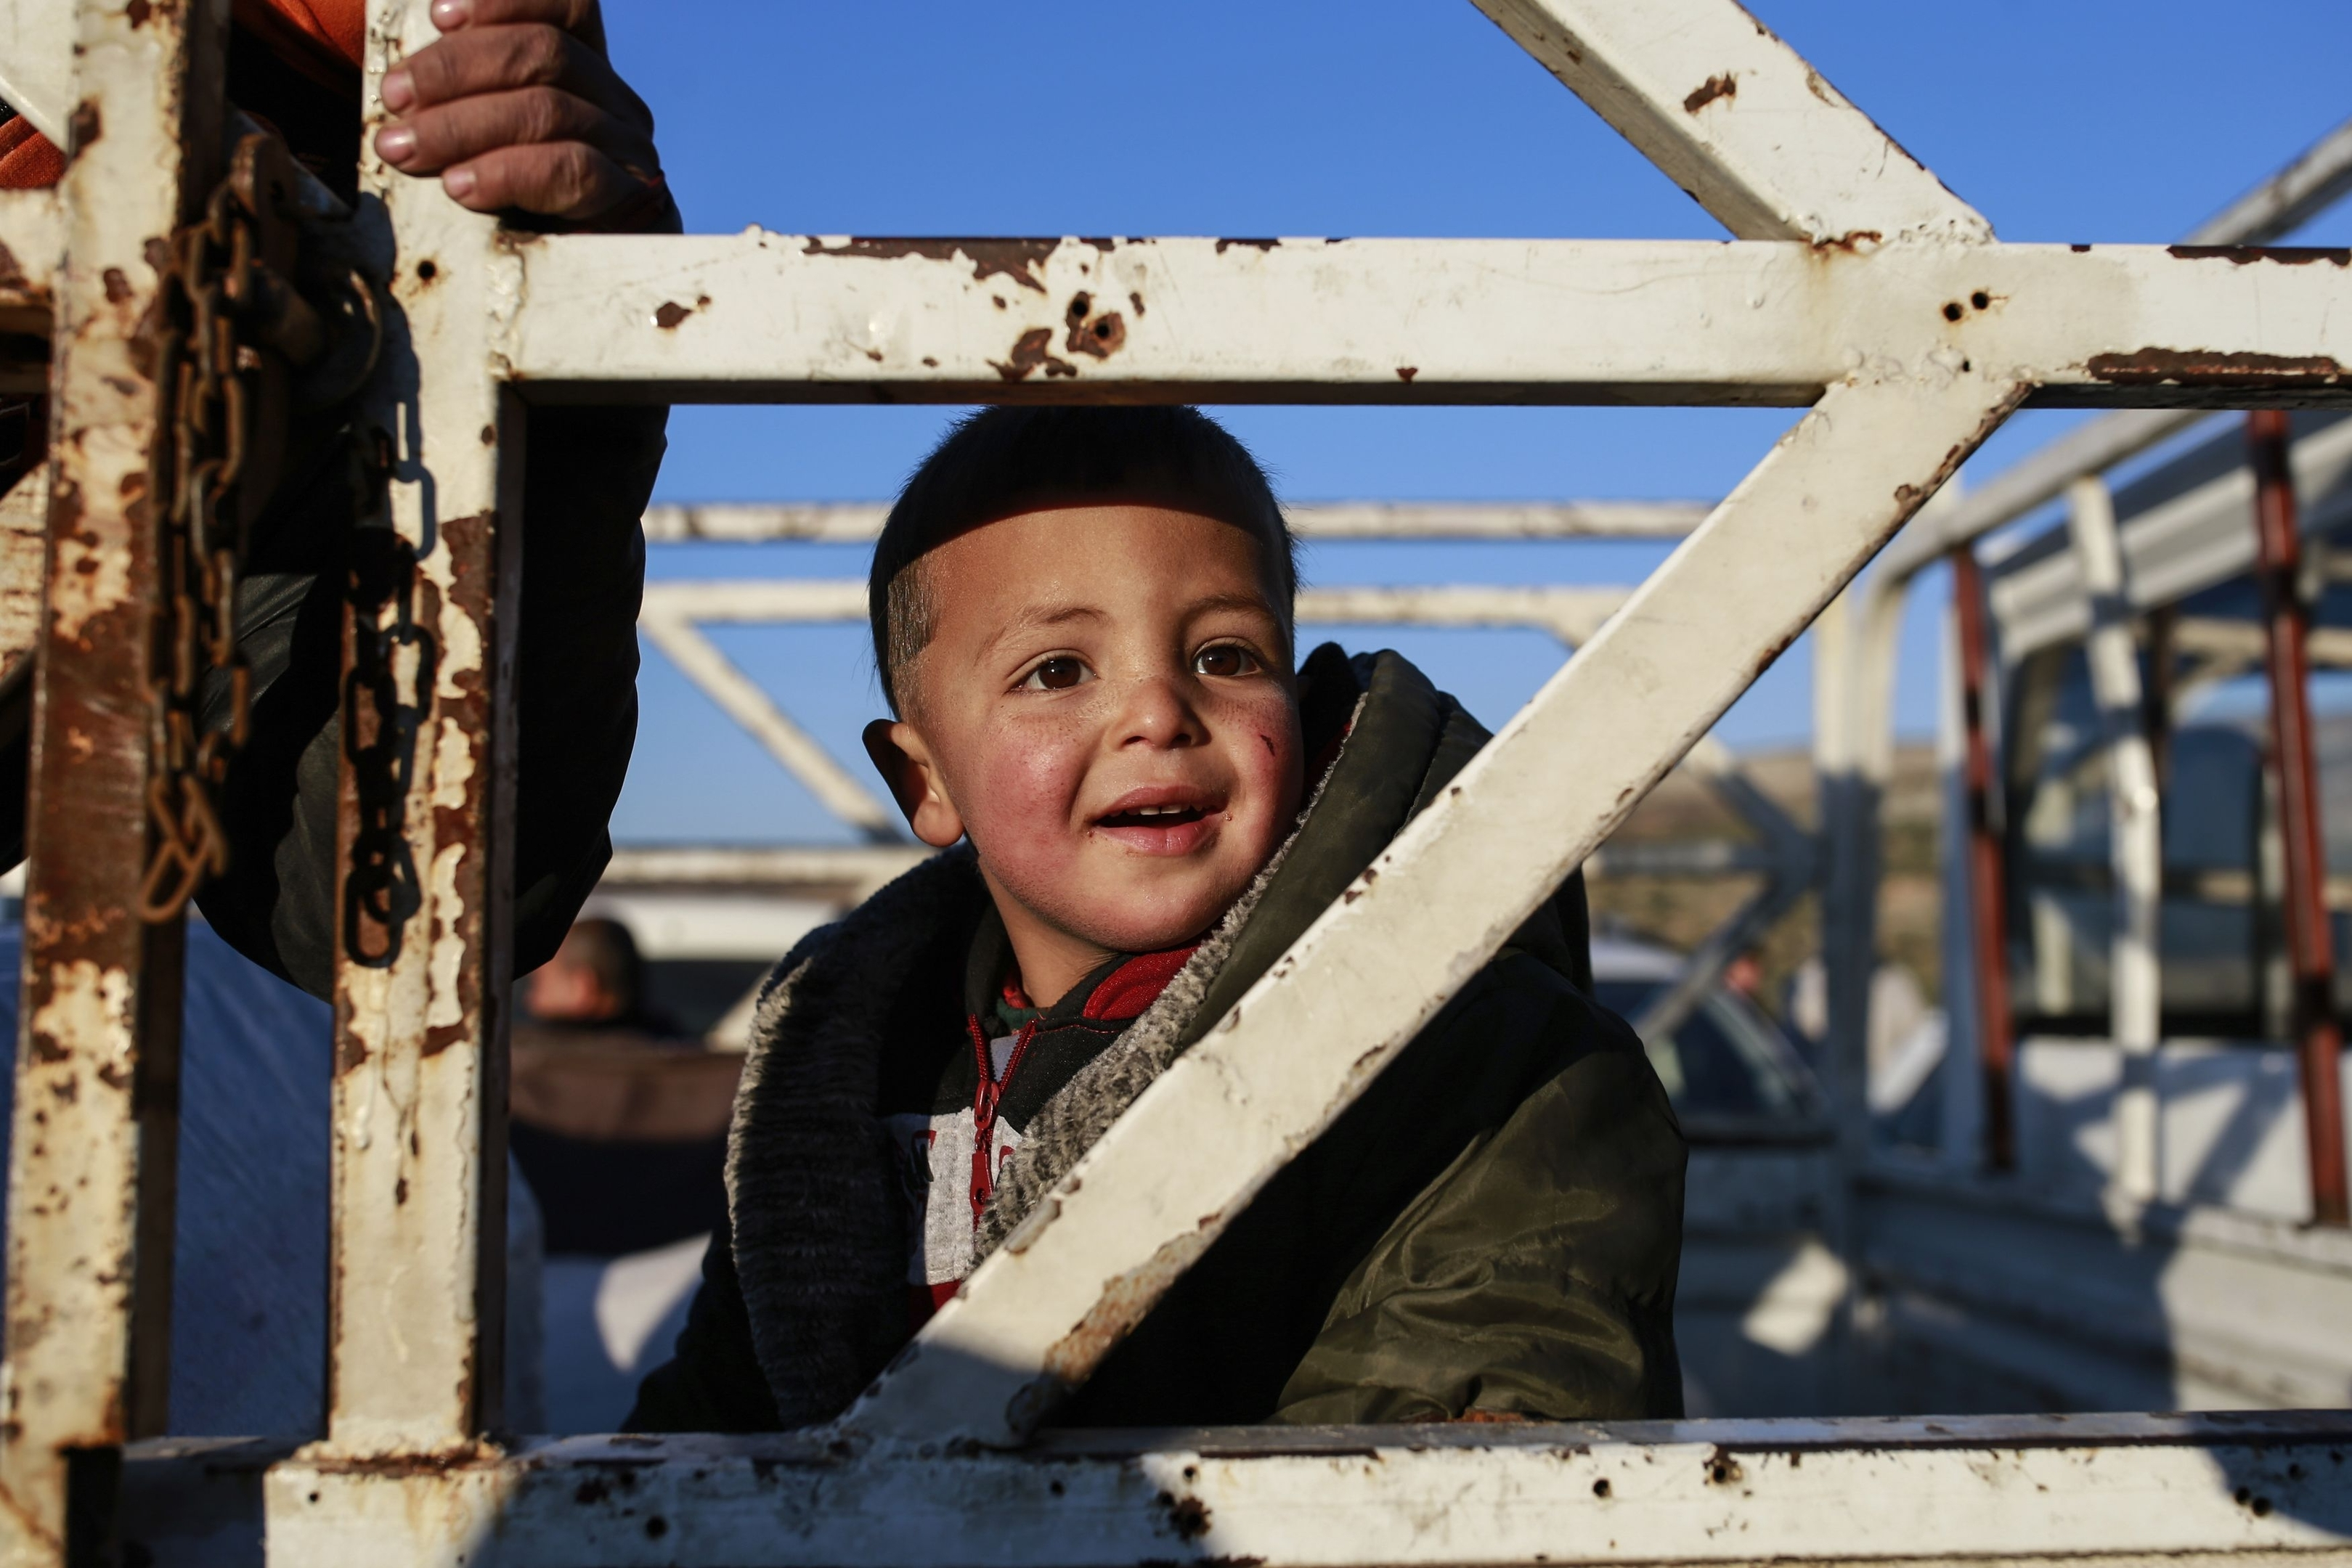 A Syrian child smiles as he is driven away after he and other members of the family crossed into Turkey at the Cilvegozu border gate with Syria, near Hatay, southeastern Turkey, Sunday, Dec, 18, 2016. Several people were able to cross into Turkey after they managed to leave the embattled Syrian city during the ceasefire